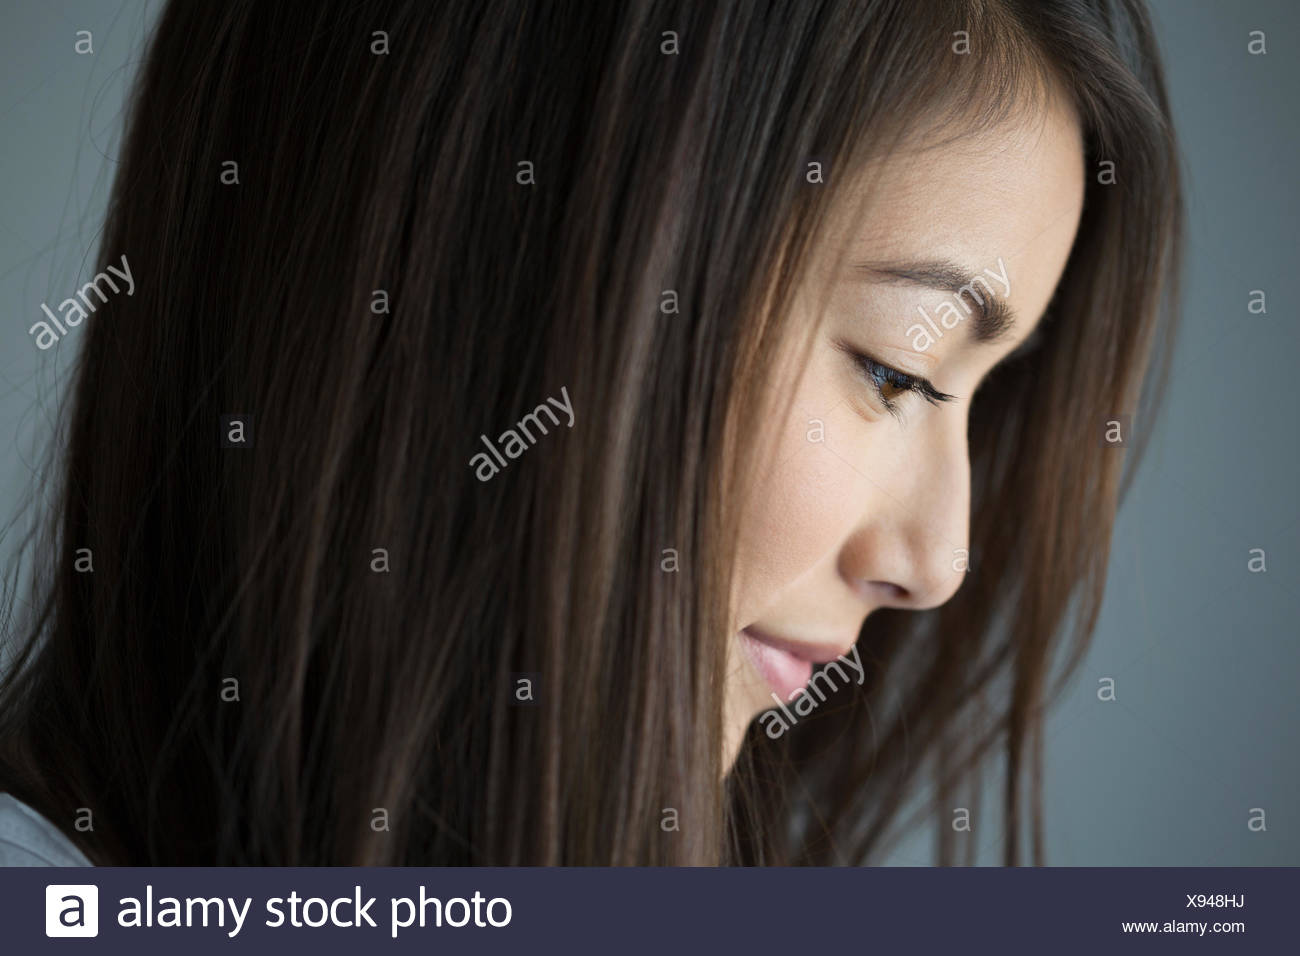 Close up profile pensive brunette woman looking down Photo Stock